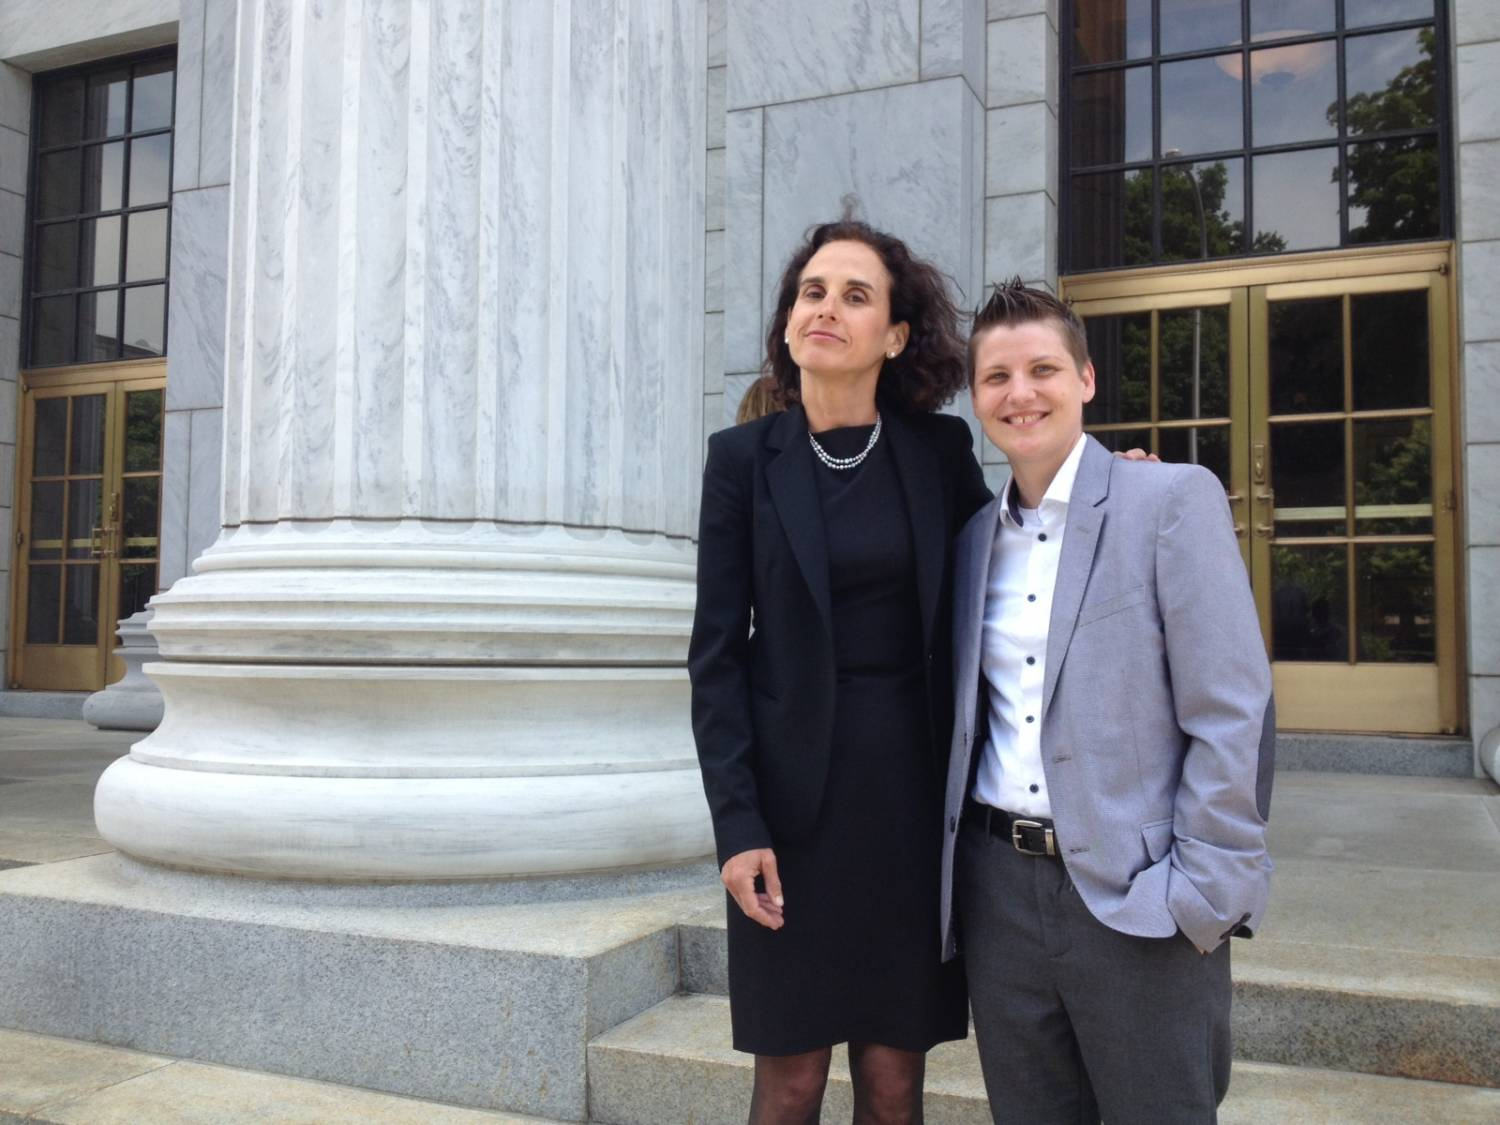 Susan Sommer, National Director of Constitutional Litigation at Lambda Legal (L), with Lambda Legal client Brooke B. (R).